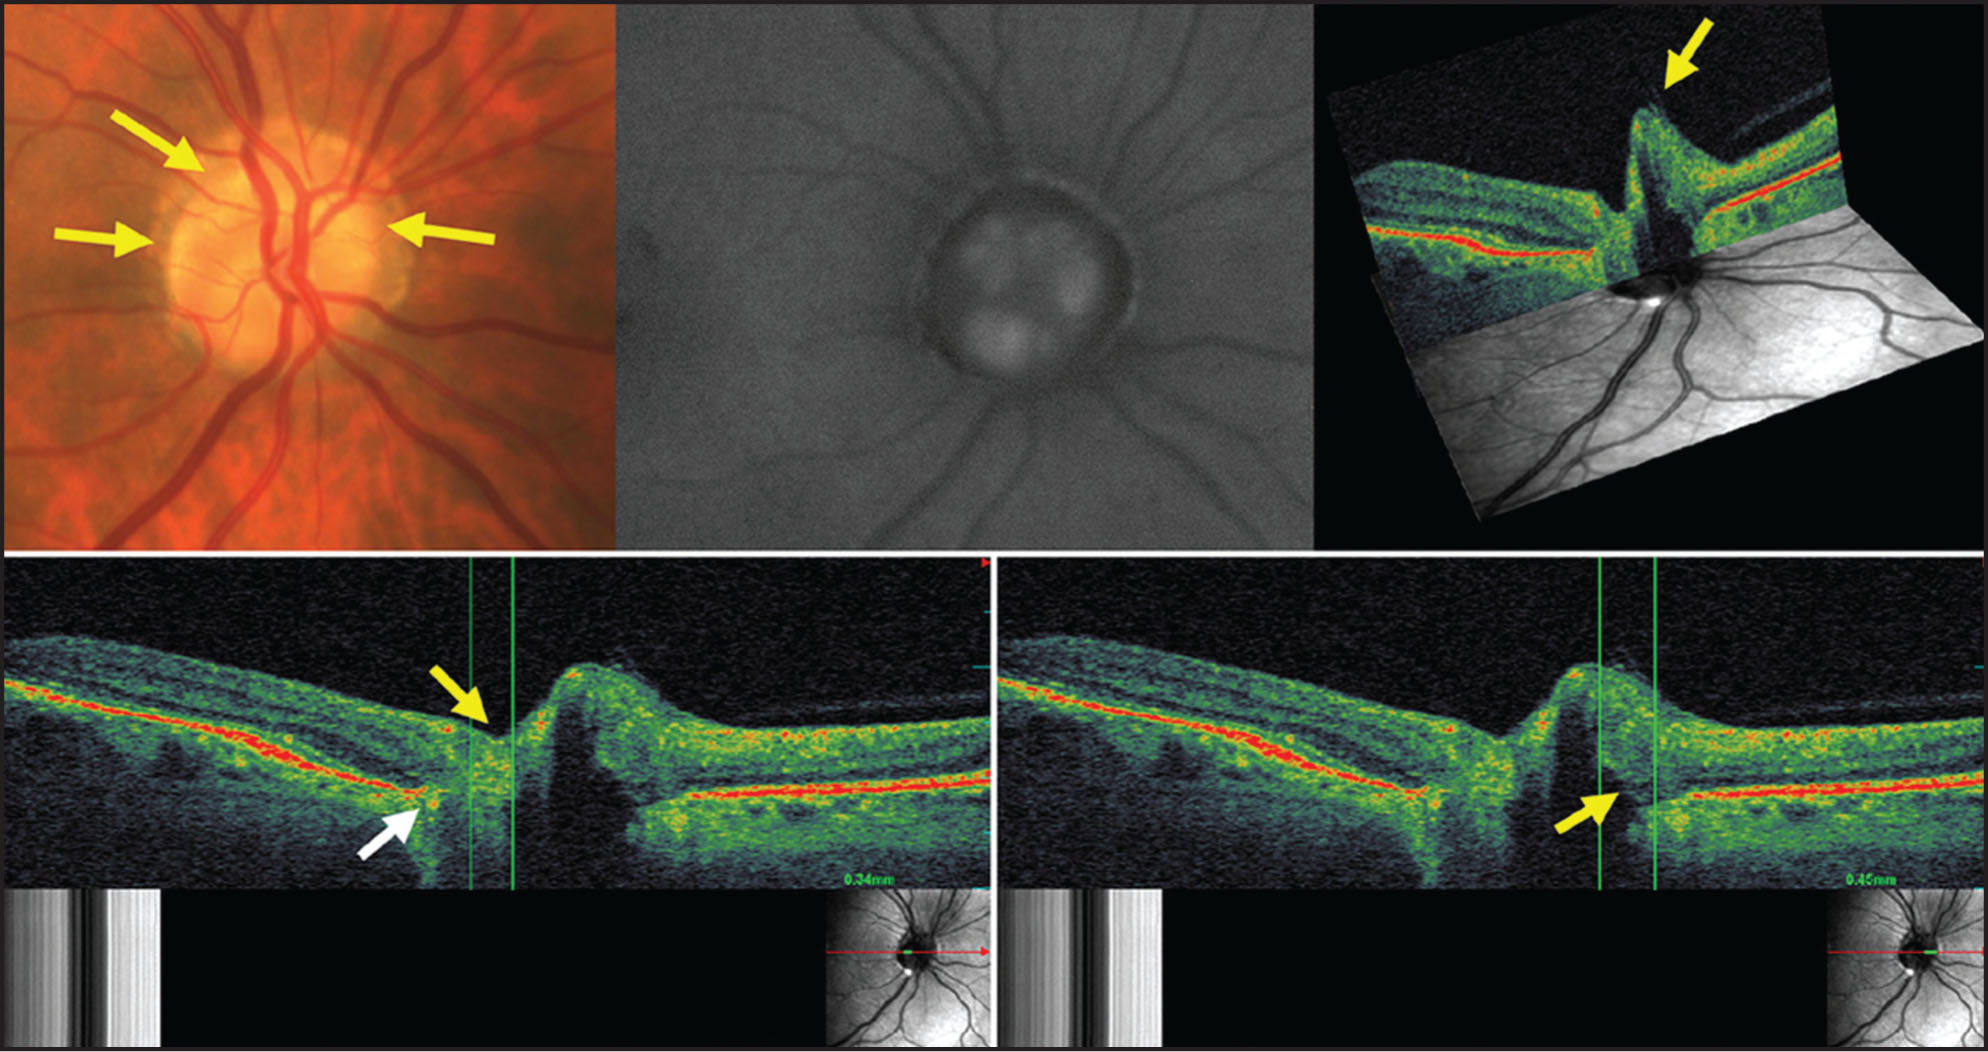 Optical Coherence Tomography/scanning Laser Ophthalmoscopy (OCT/SLO) of Optic Nerve Head Drusen. (Top Left) Multiple Optic Nerve Head Drusen (arrows) Are Visible in the Right Eye. (Top Middle) Corresponding Autofluorescence Imaging Demonstrating Diffuse Optic Nerve Head Drusen, Grouped Nasally, Temporally, and Superiorly. (Top Right) Intersecting Plane Analysis of Optic Nerve Head Drusen. Transverse OCT Image Is Intersected with the SLO Fundus Image, Demonstrating a Three-Dimensional Displacement of Nerve Fiber Layer Secondary to Optic Nerve Head Drusen (arrow). (B Ottom Left) OCT/SLO B-Scan Showing the Hyperreflective Temporal Drusen (yellow Arrow) with Underlying Shadowing and Adjacent Retinal Pigment Epithelium Disorganization (white Arrow). (B Ottom Right) OCT/SLO B-Scan Demonstrating Nasal Drusen with Shadowing and Overlying Displacement of the Nerve Fiber Layer. In Both OCT/SLO Images on the Bottom, the SLO Image Is Seen on the Bottom Right with the Red Arrow Indicating the Exact Positioning of the OCT Image.